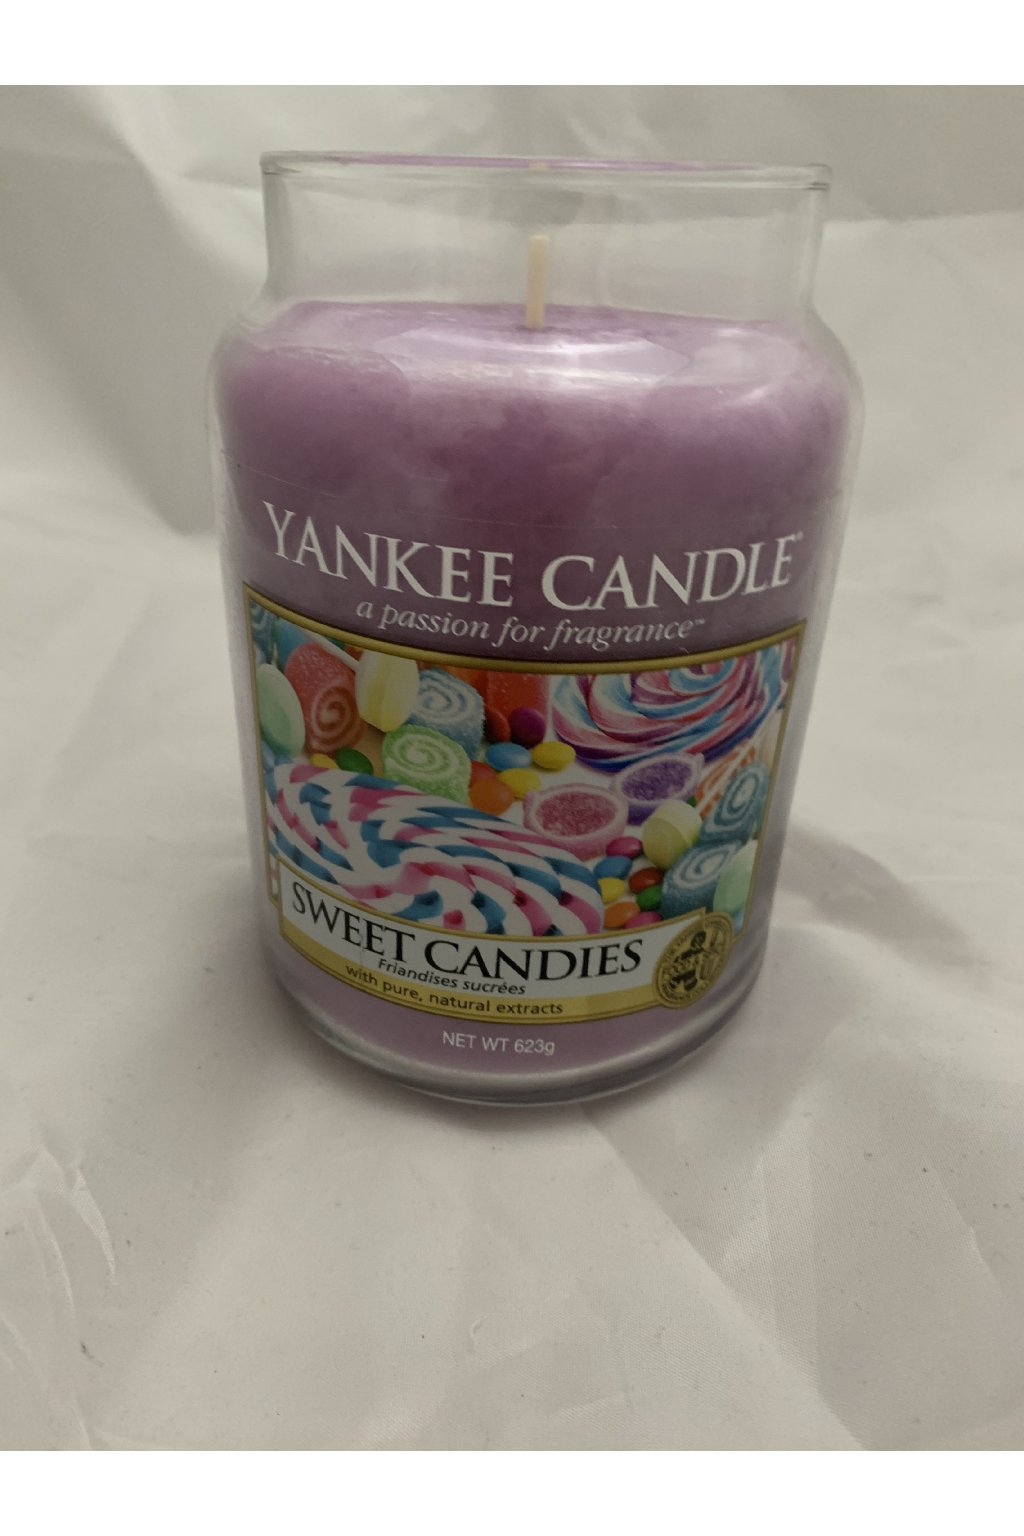 Yankee Candle Sweet Candies 623g 2017